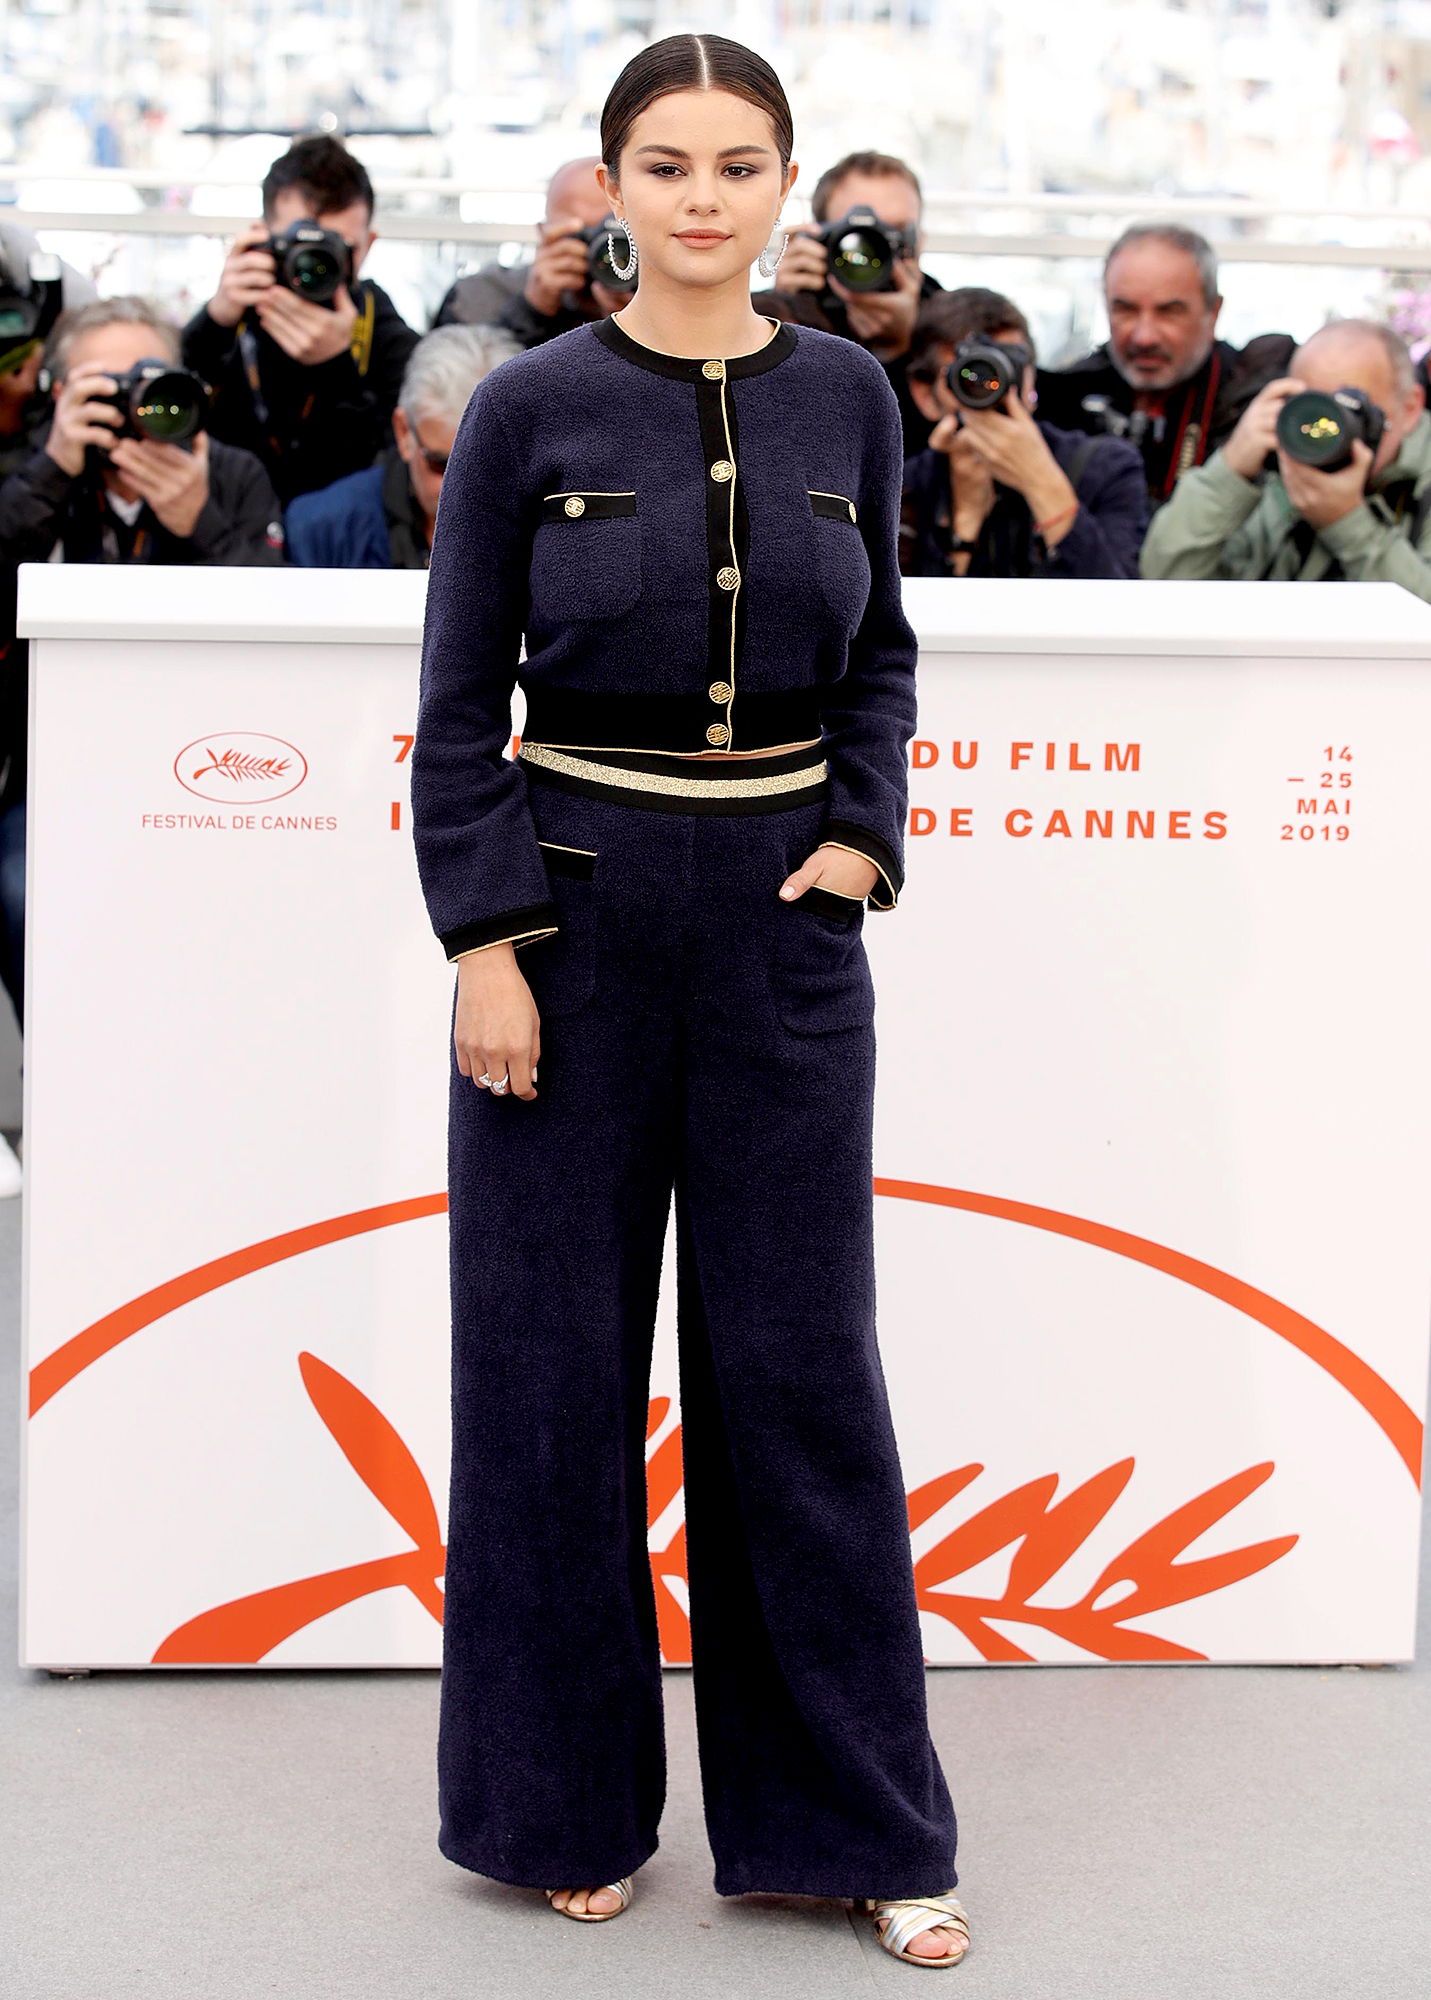 Selena-Gomez - The Dead Don't Die actress was nautical-chic in a terrycloth Chanel suit at the film's photo-call on Wednesday, May 15.